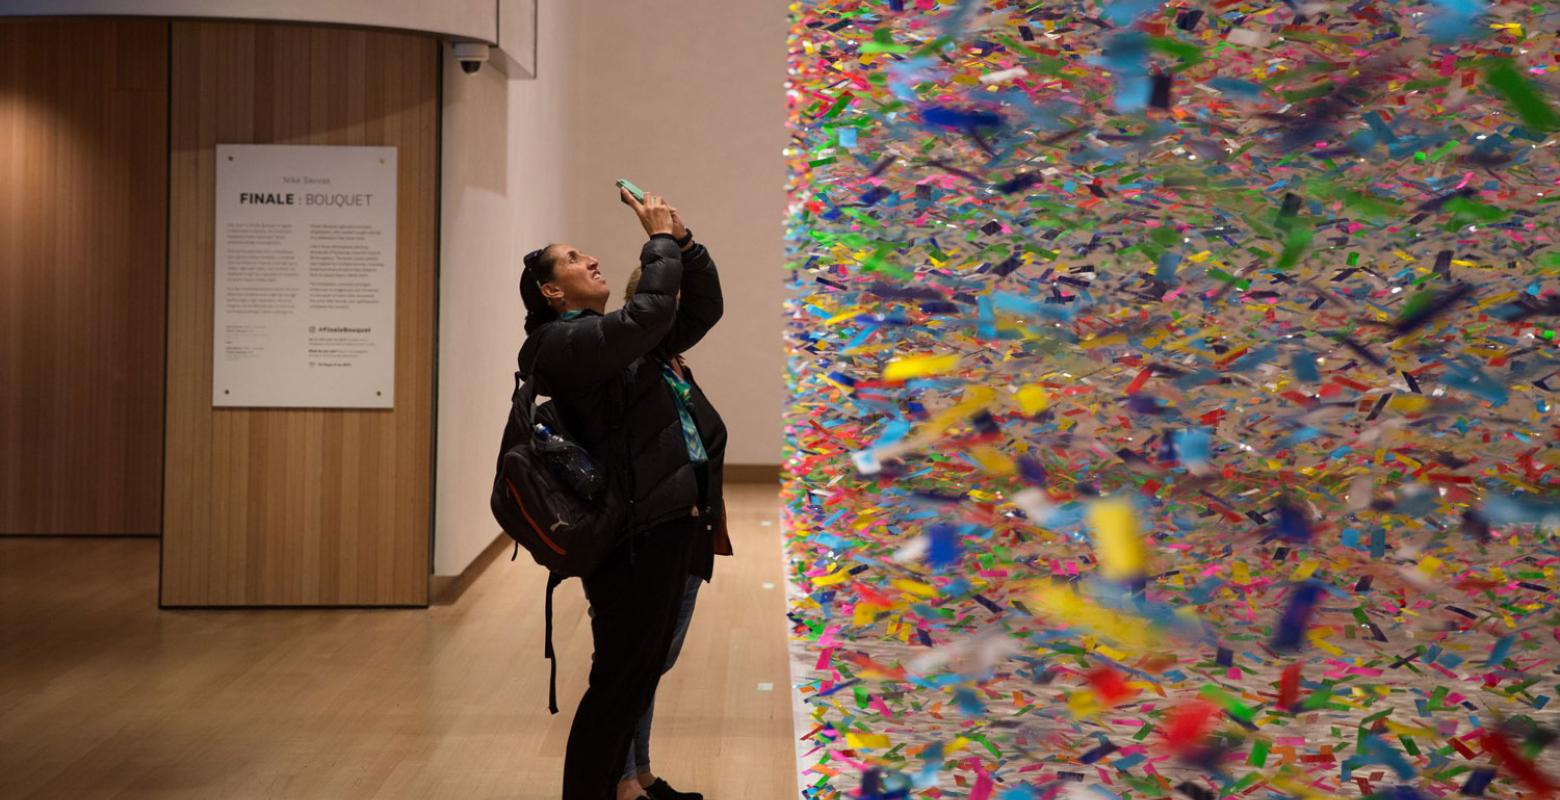 Visitor taking photos of a colourful large-scale artwork